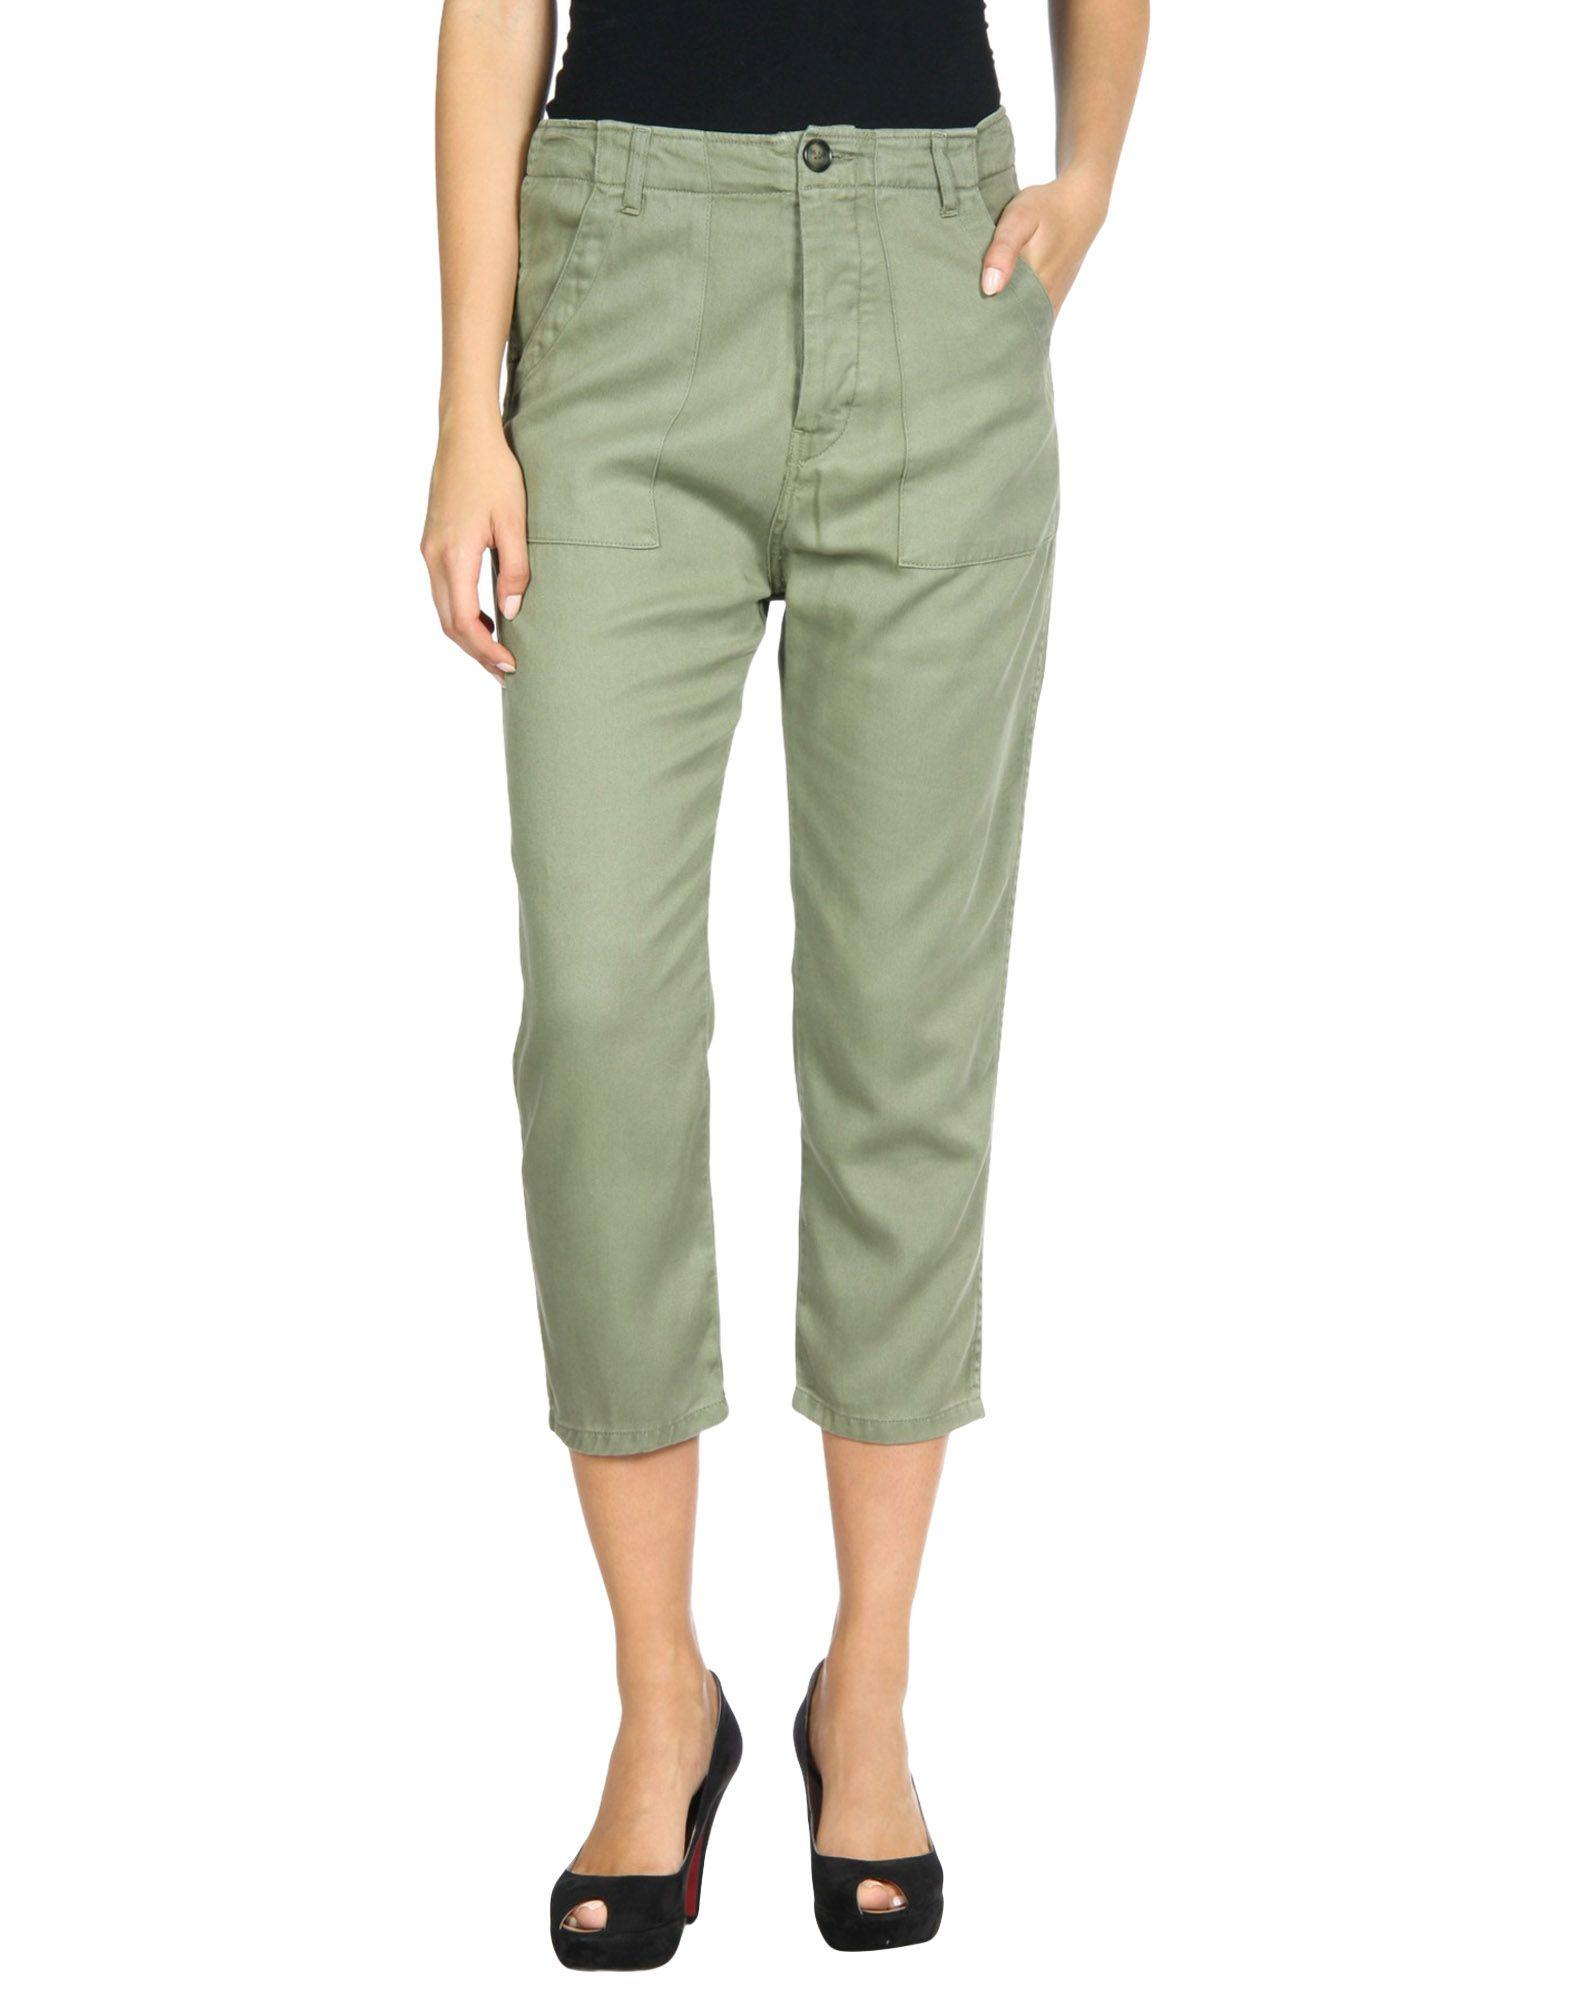 Etienne Marcel Casual Pants In Military Green